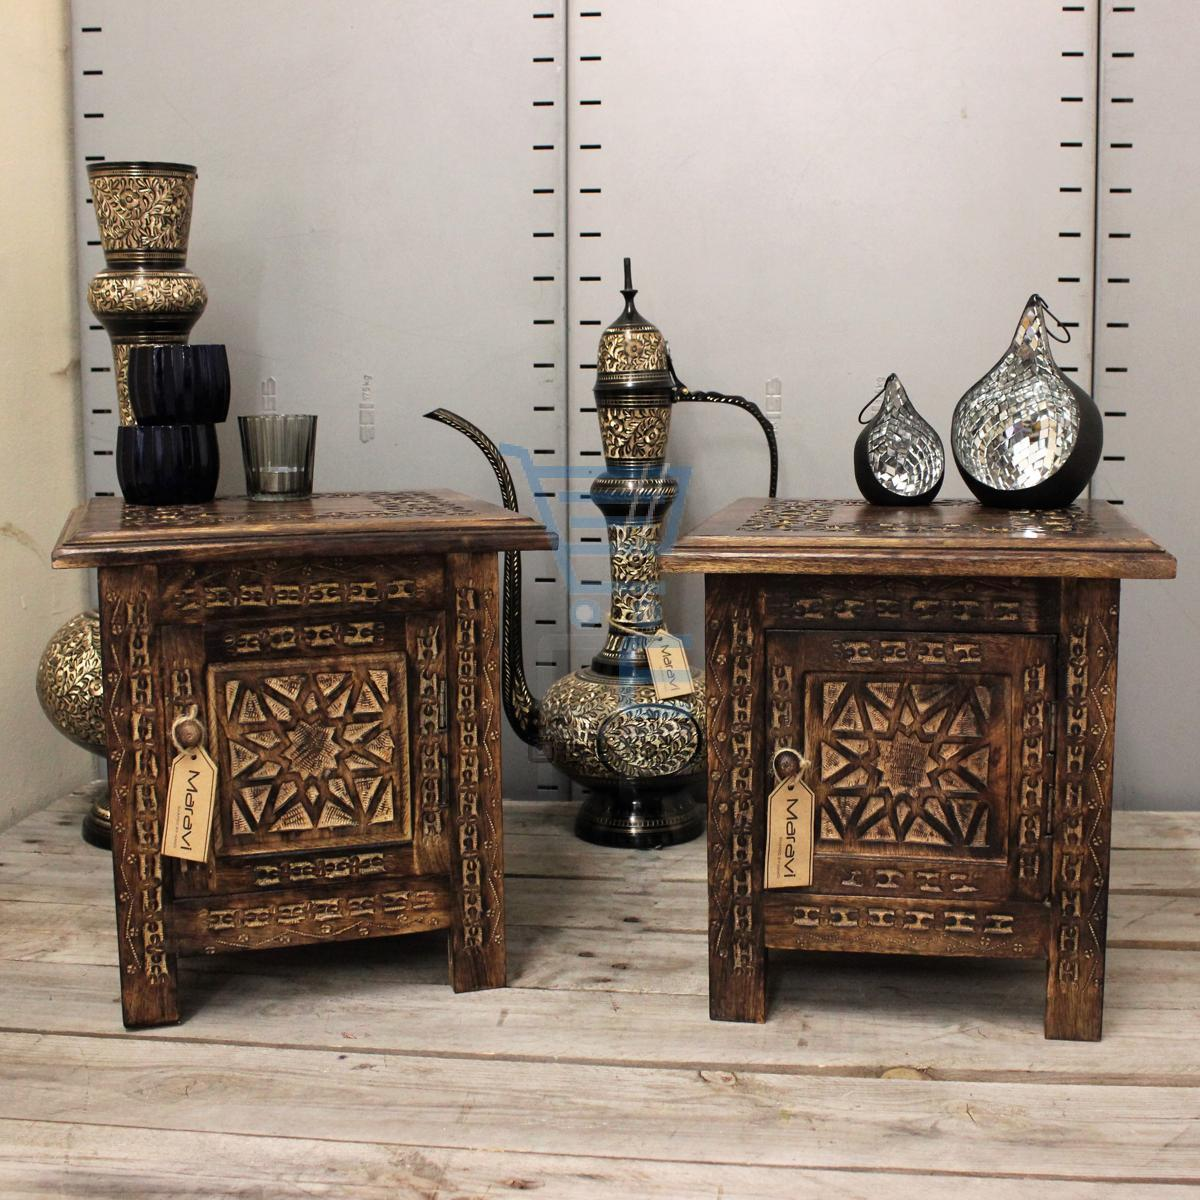 maravi set of 2 small square side tables moroccan style carving storage ebay. Black Bedroom Furniture Sets. Home Design Ideas